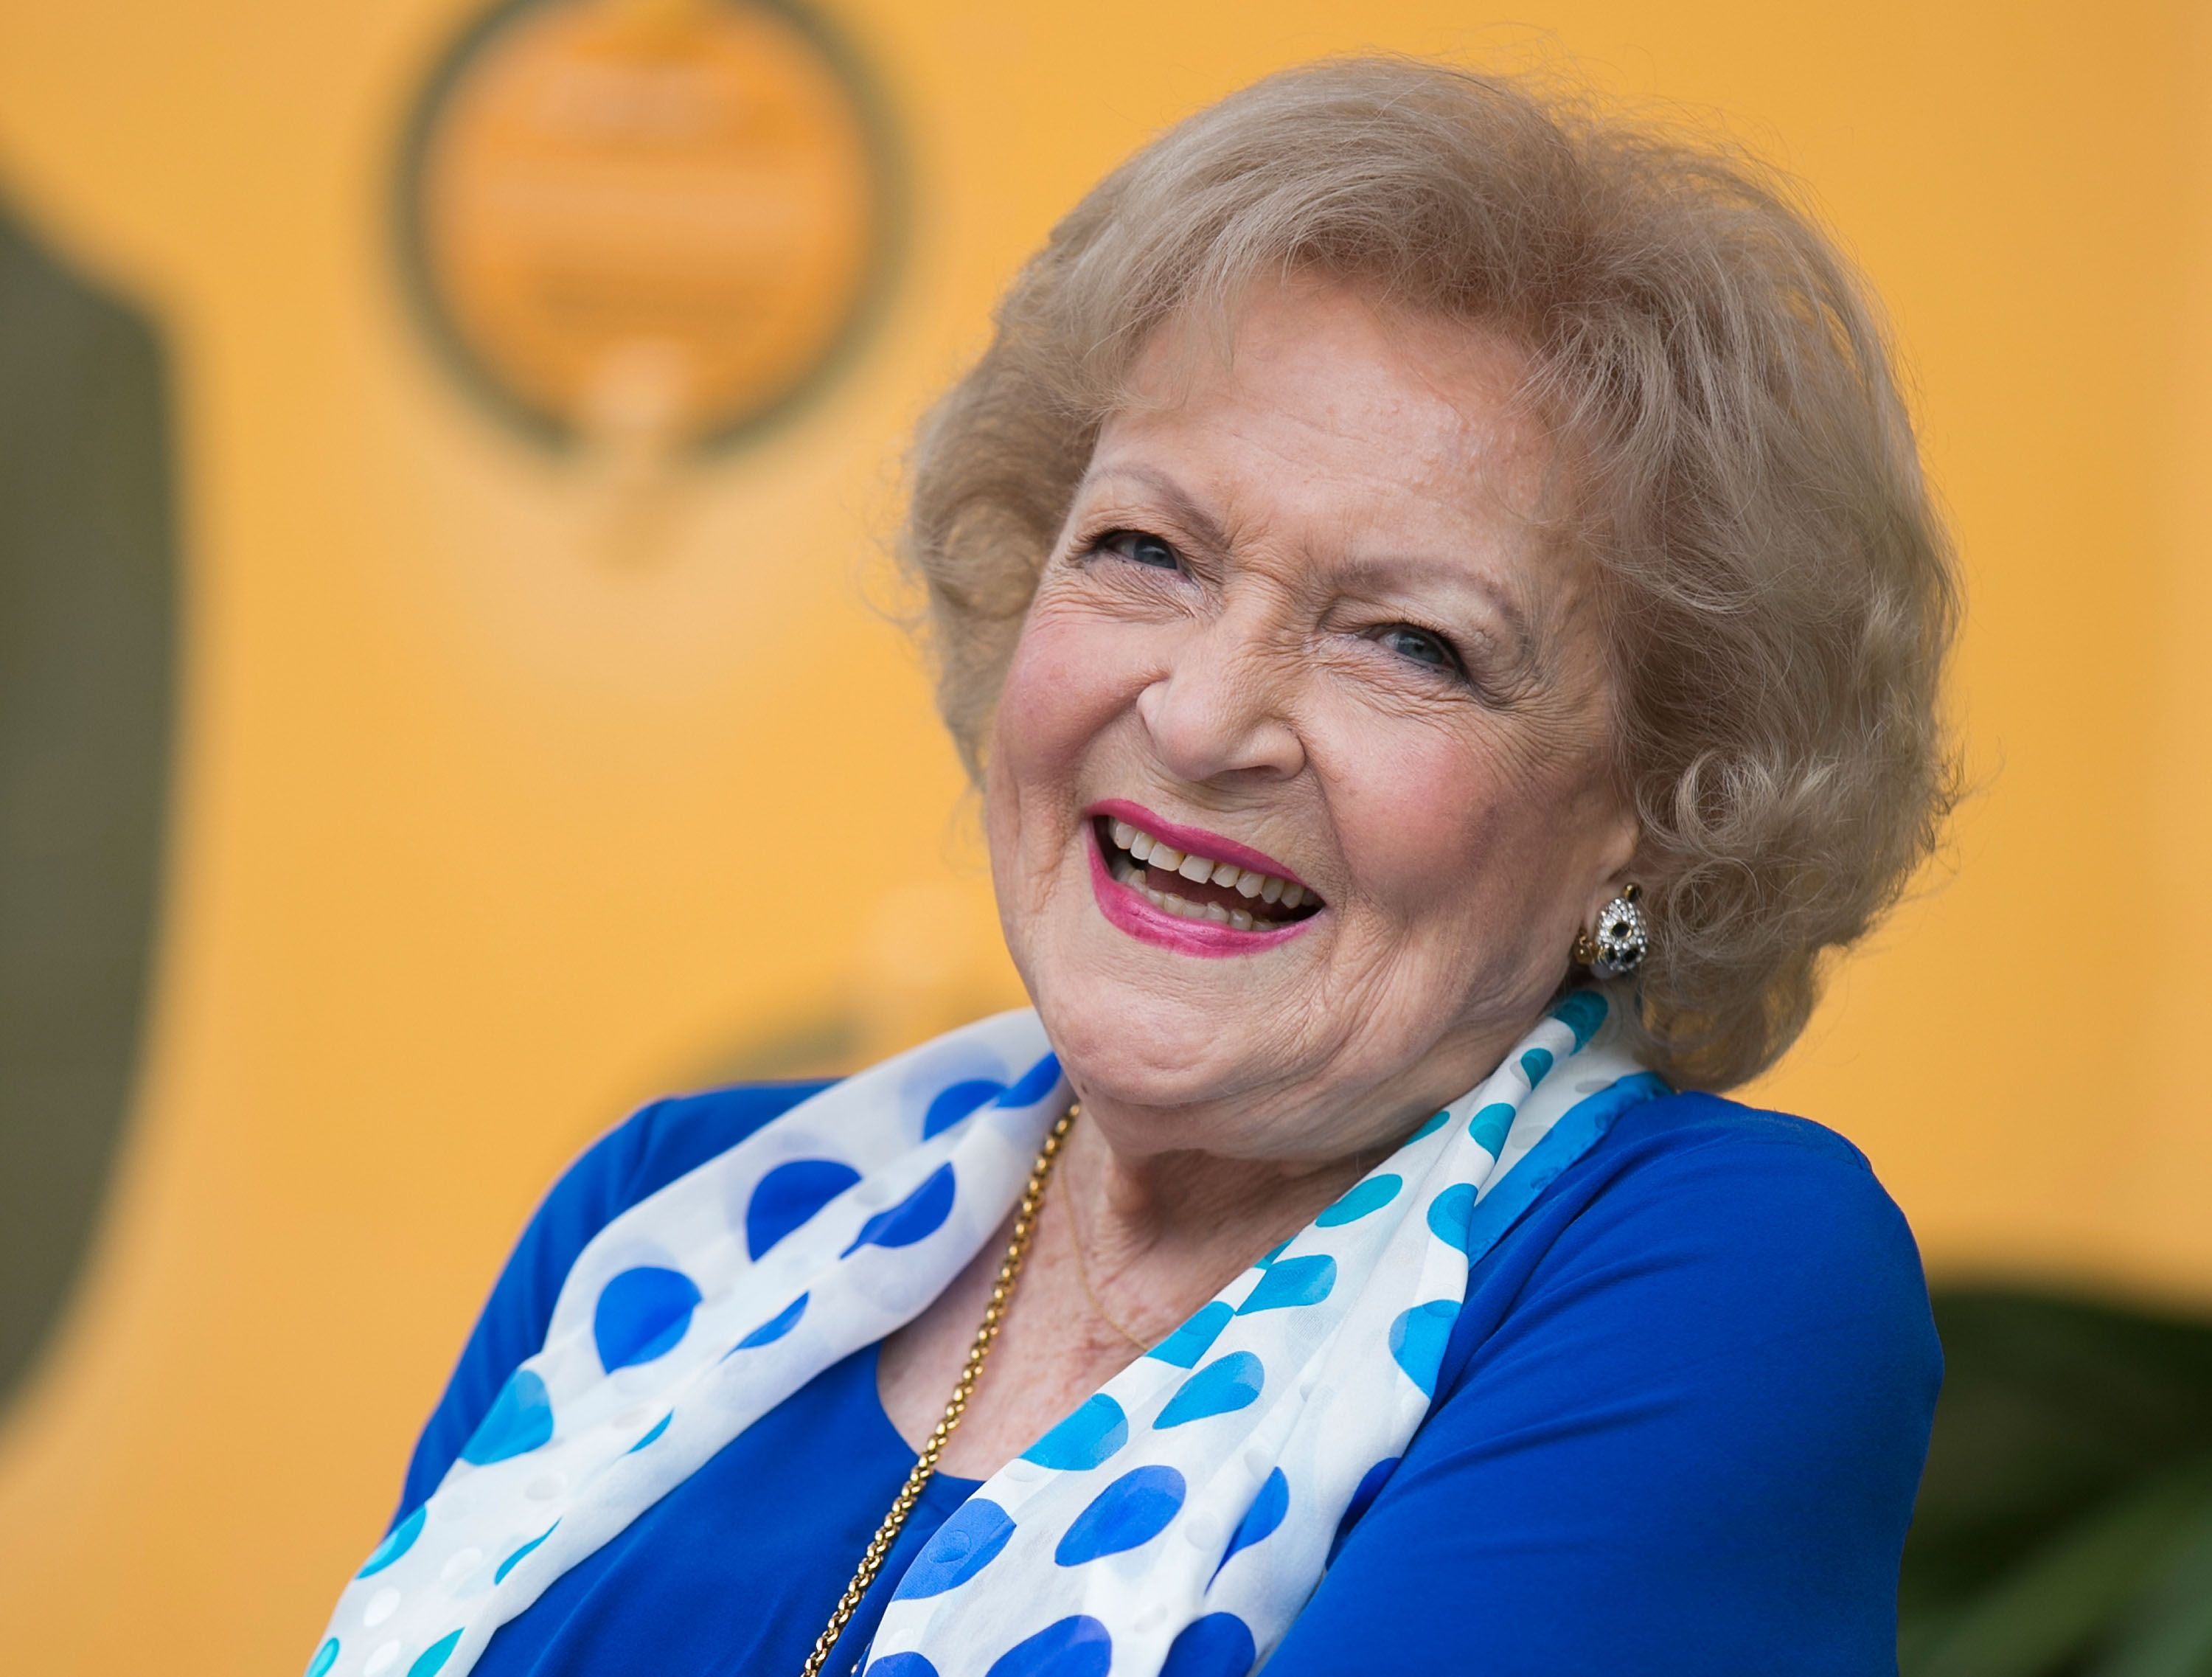 Betty White at the media preview for Greater Los Angeles Zoo Association's Beastly Ball fundraiser at Los Angeles Zoo on June 11, 2015 | Getty Images